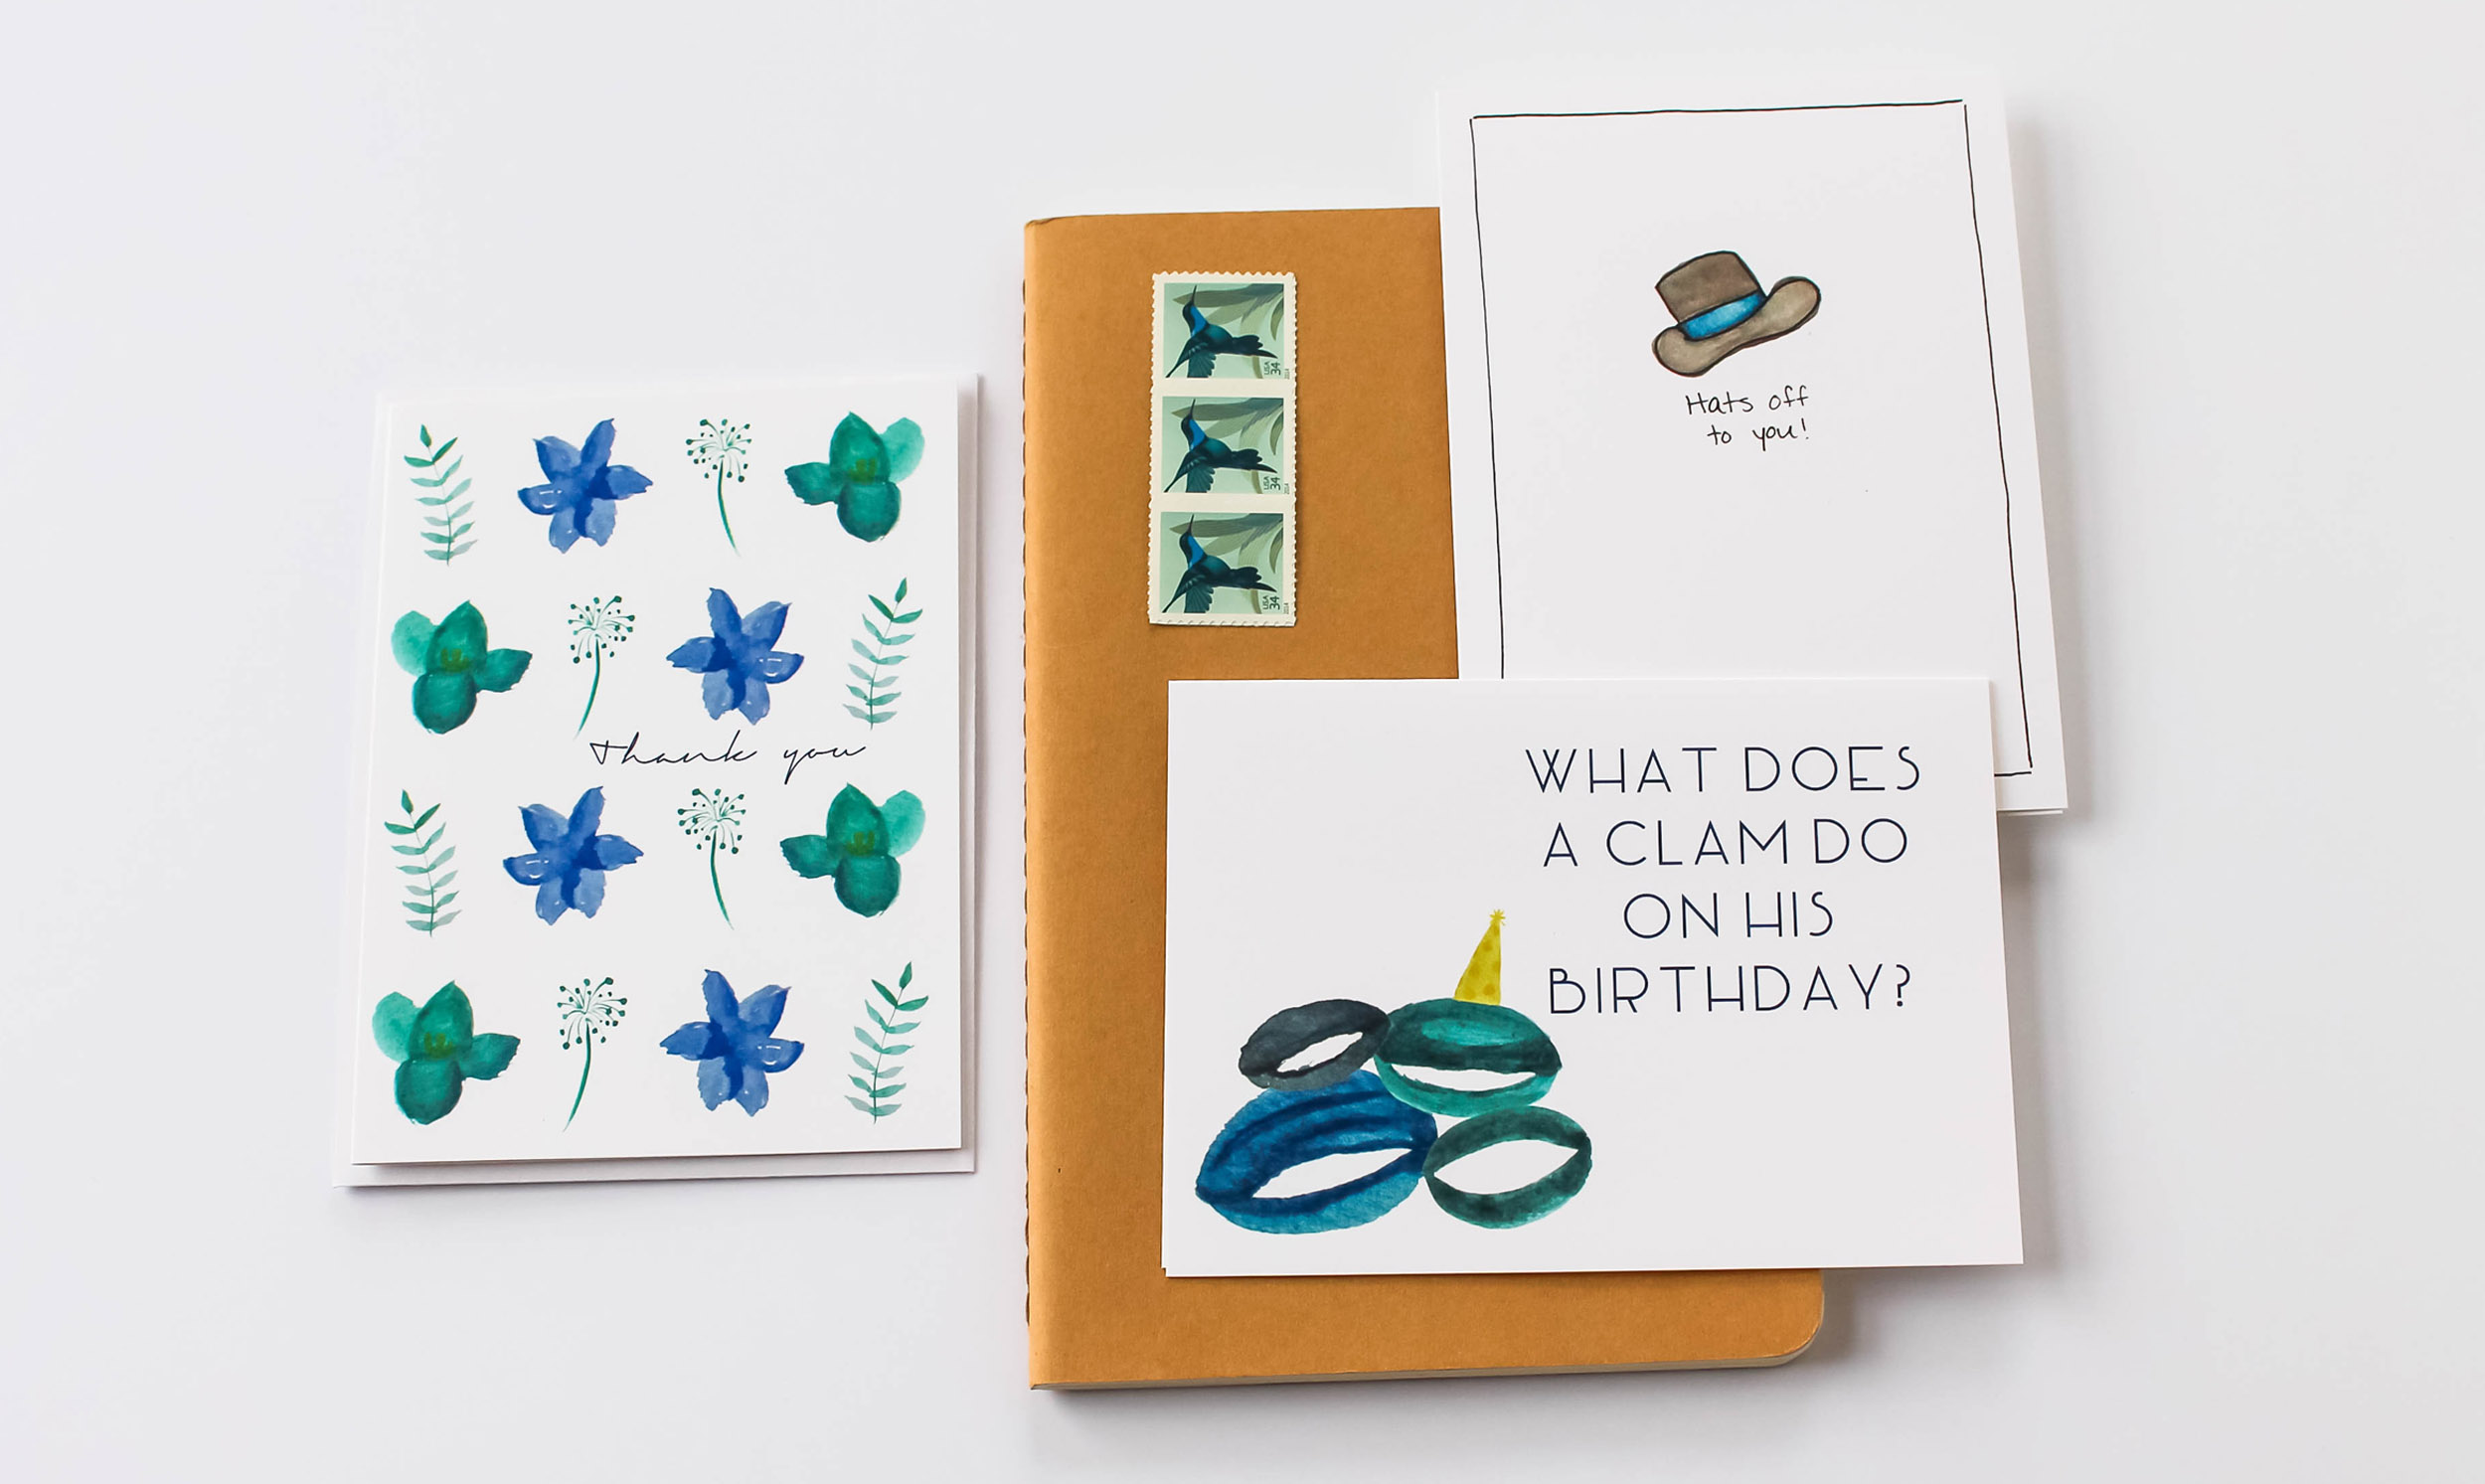 Cafe Notes + Company How To Never Miss an Important Date All Things Stamps - Card Stamps Notebook.jpg